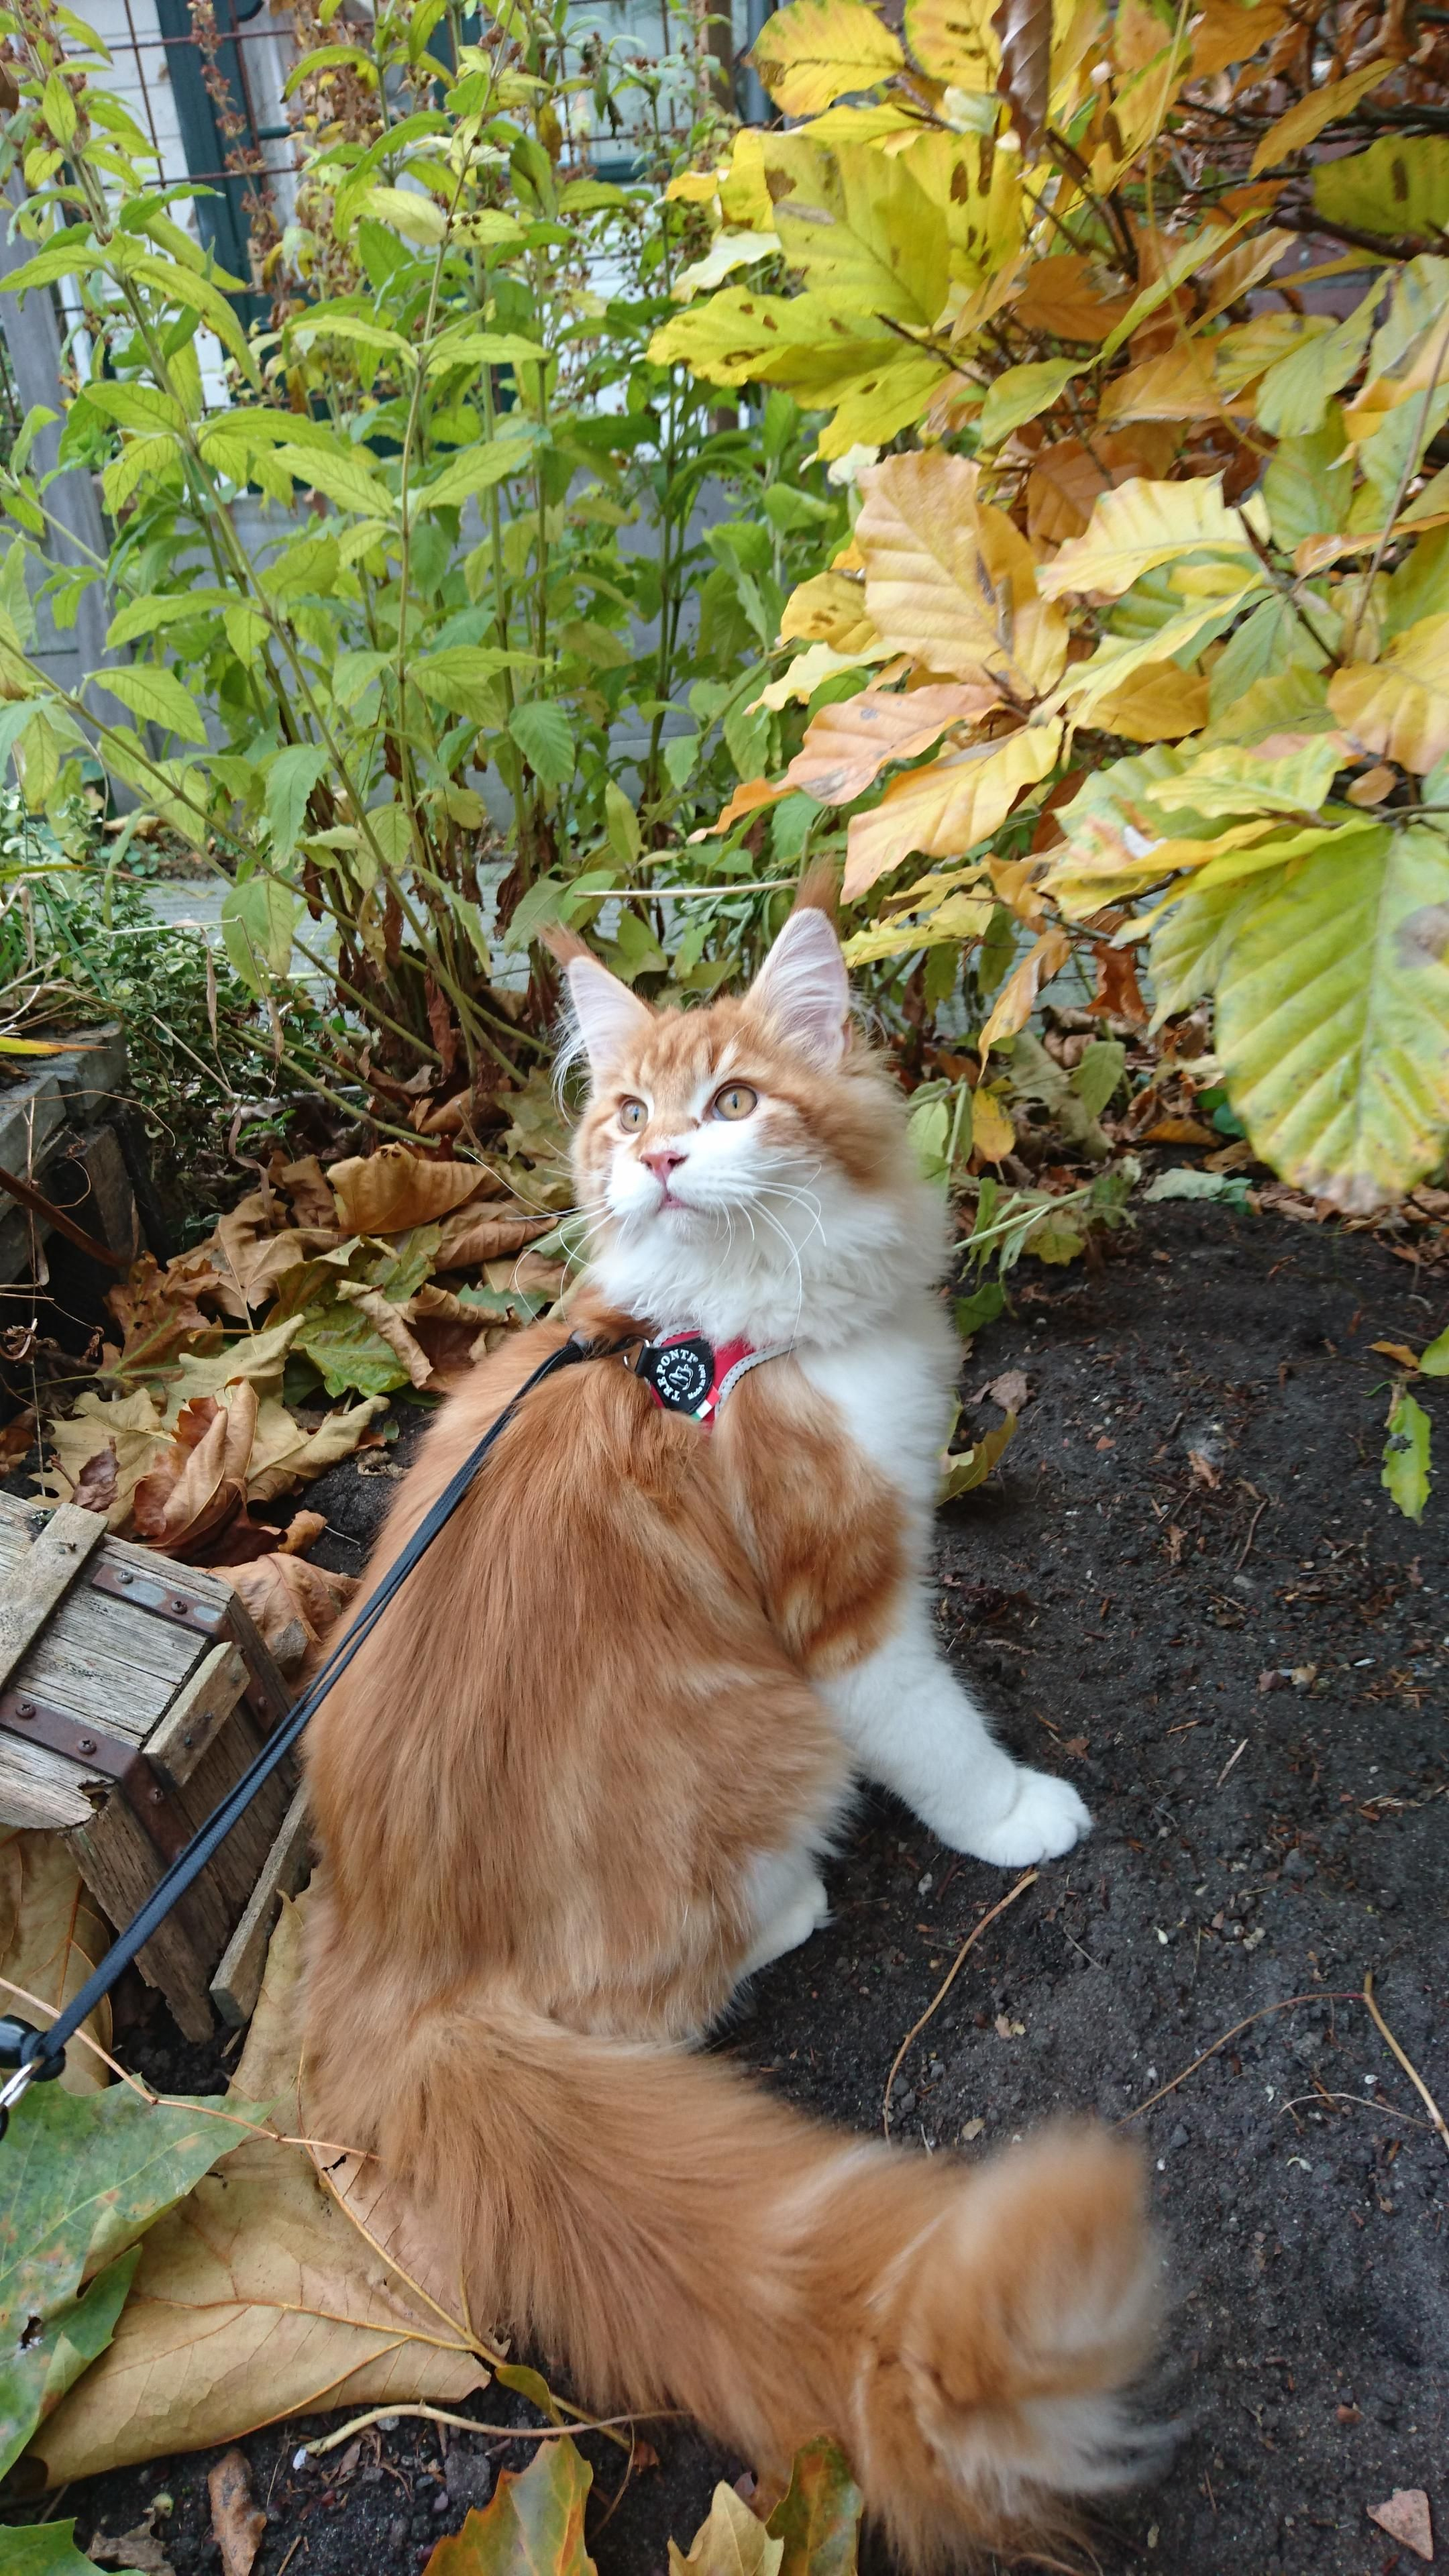 My Dear 4 5 Month Old Greebo Exploring The Garden Hes Doing So Well Getting Used To His Harness Hello There Bright Cats Cat Having Kittens Kittens Cutest